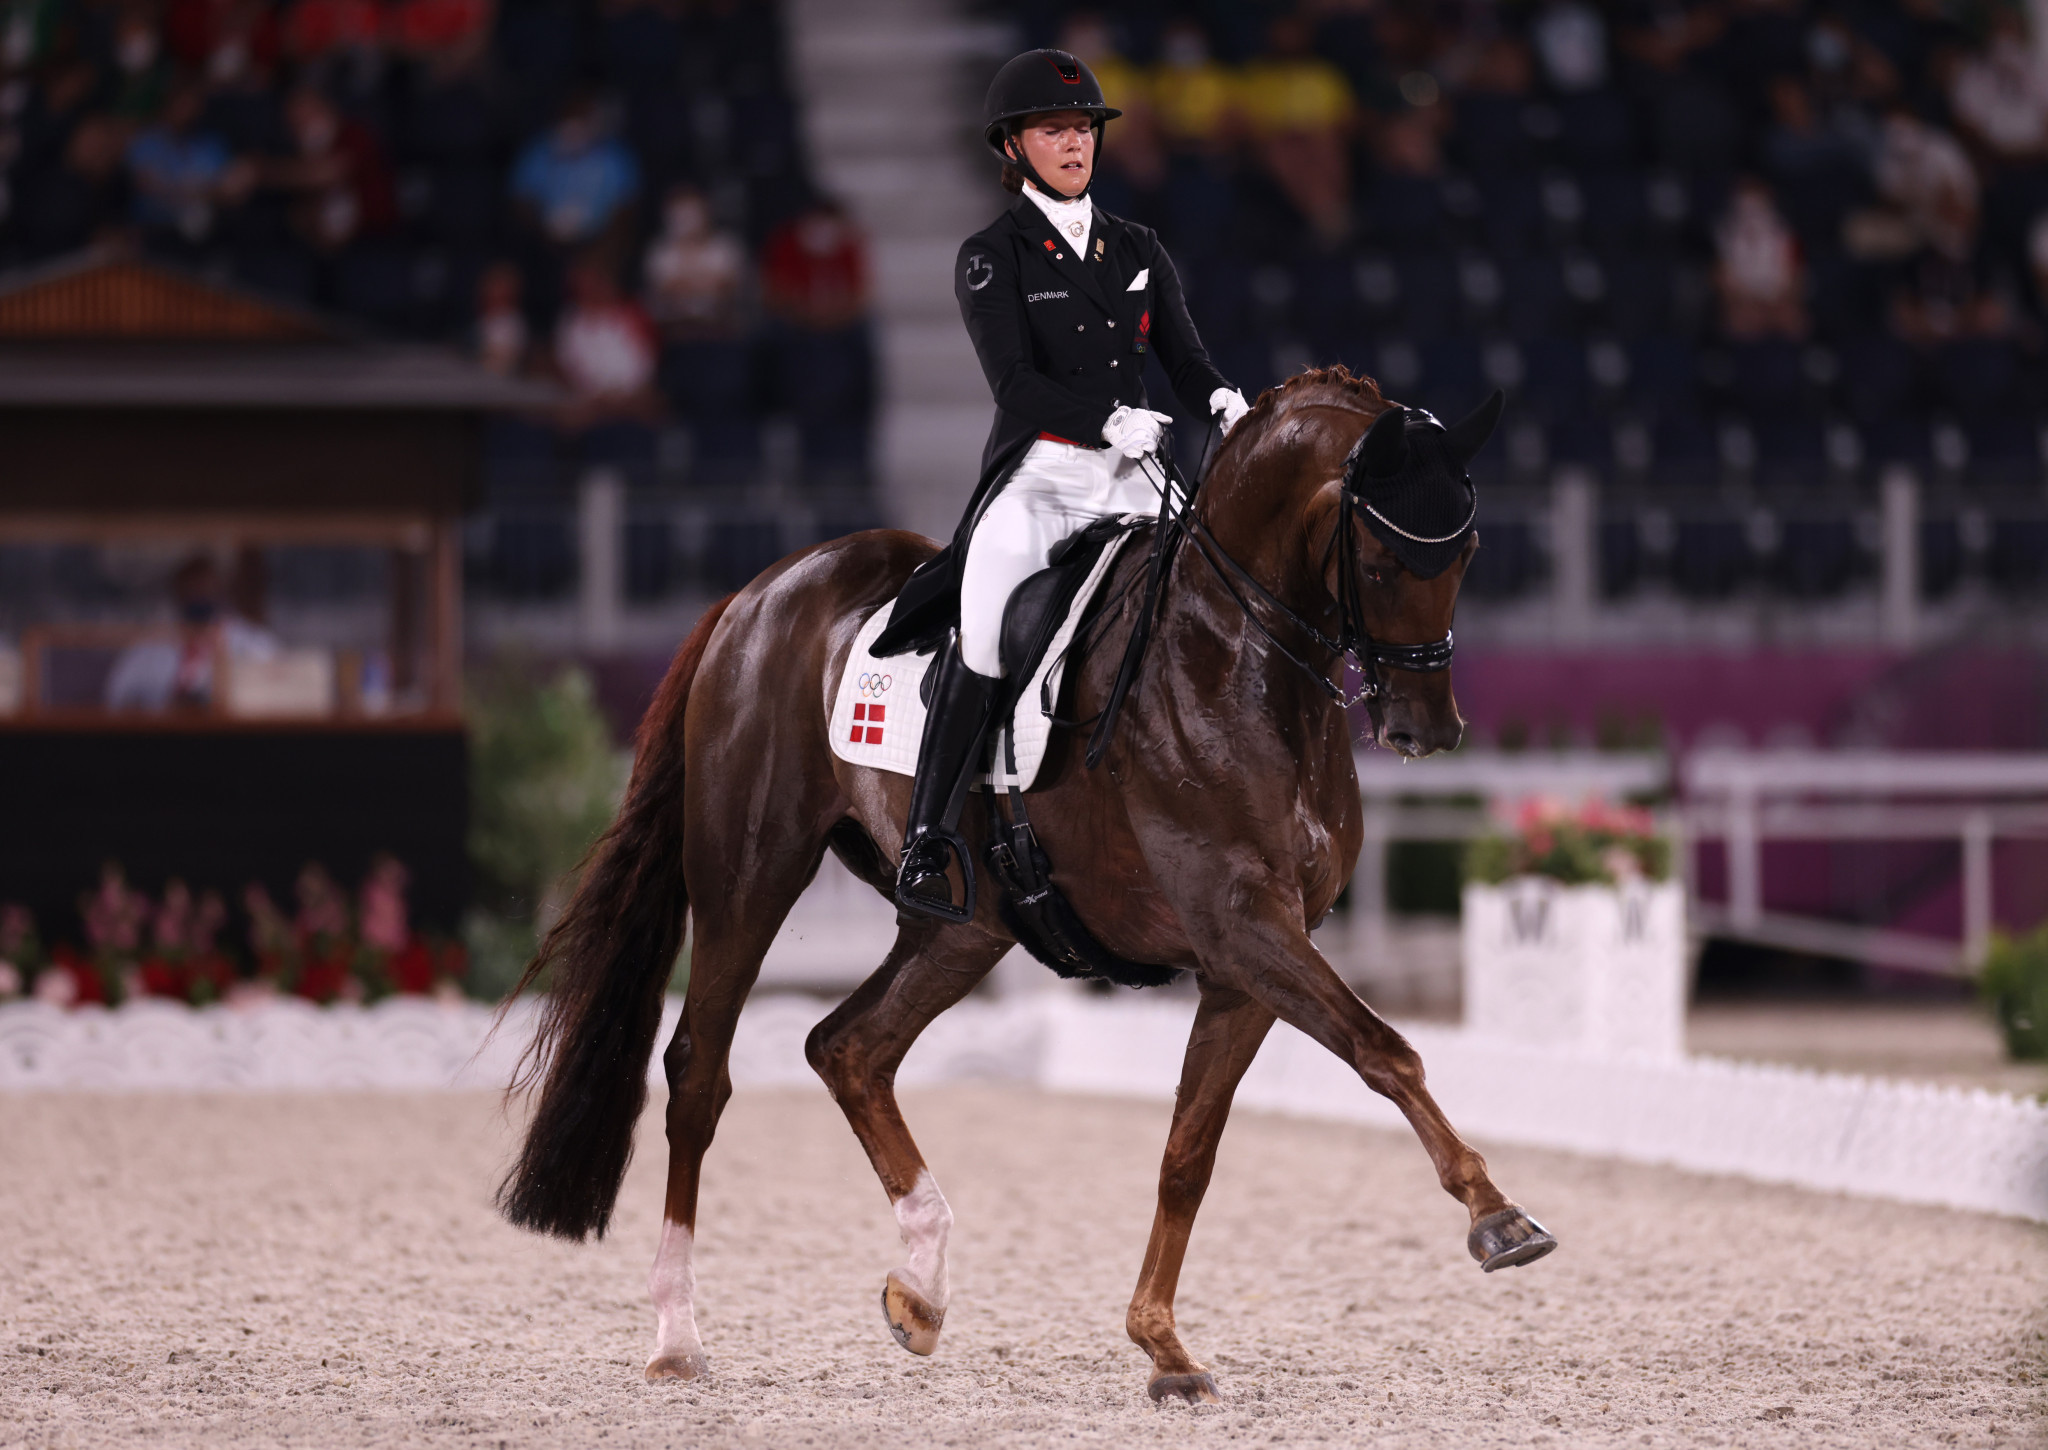 Dufour headlines strong field at Dressage World Cup opener in Herning